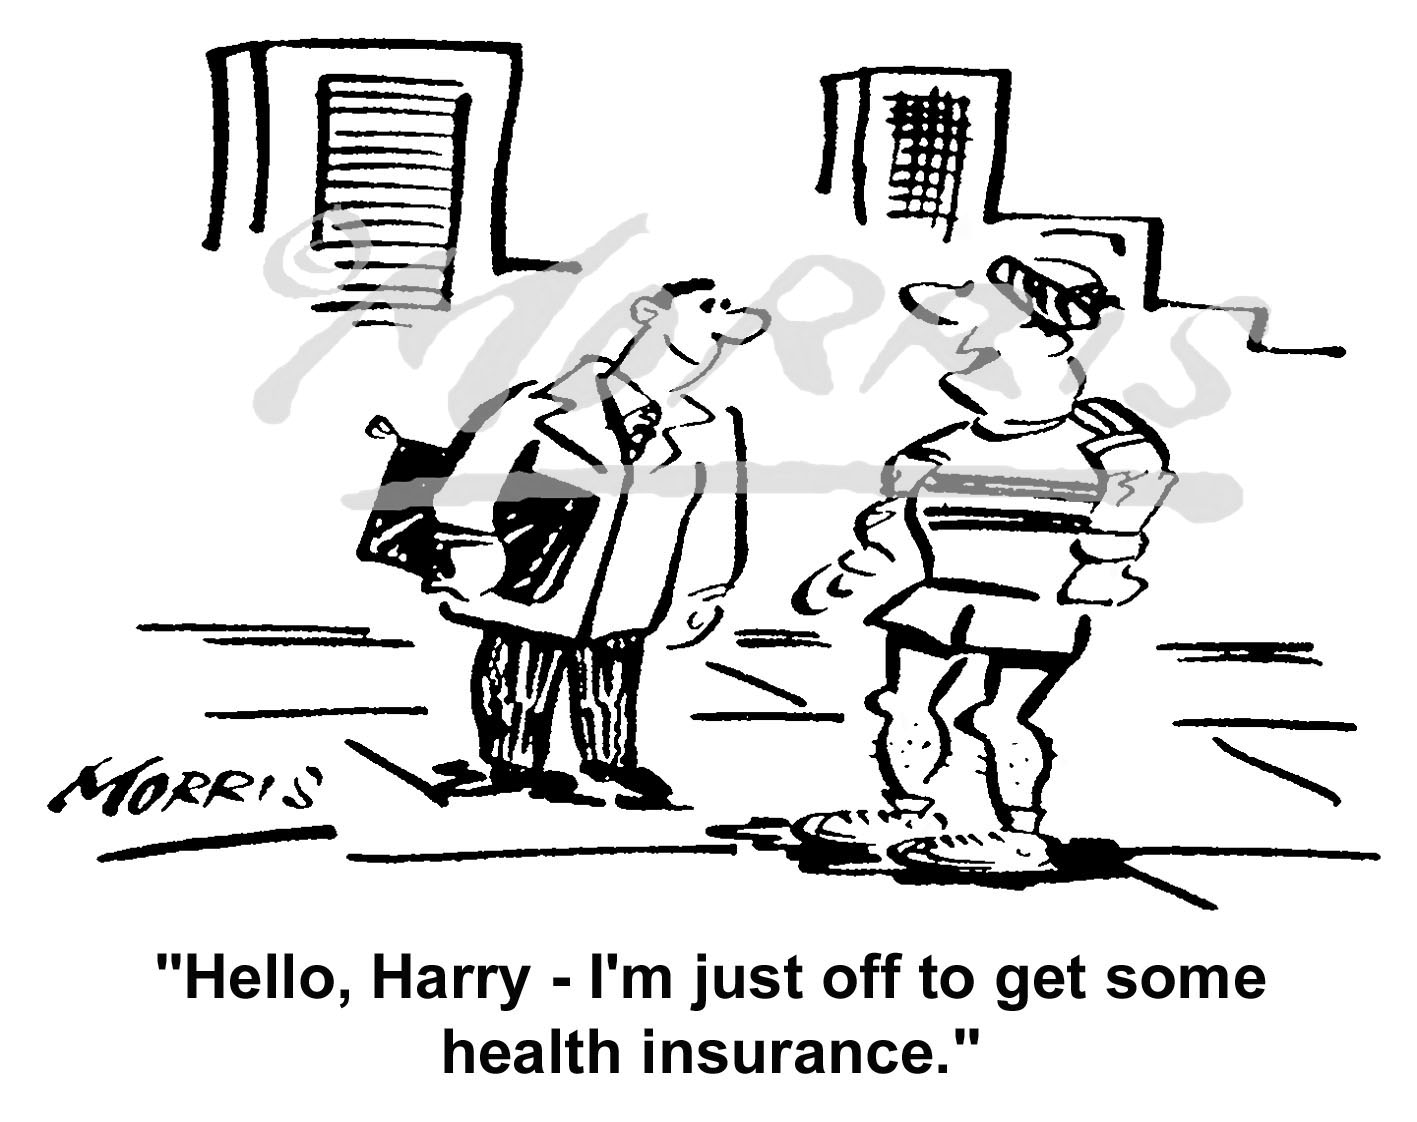 Health insurance cartoon – Ref: 4852bw